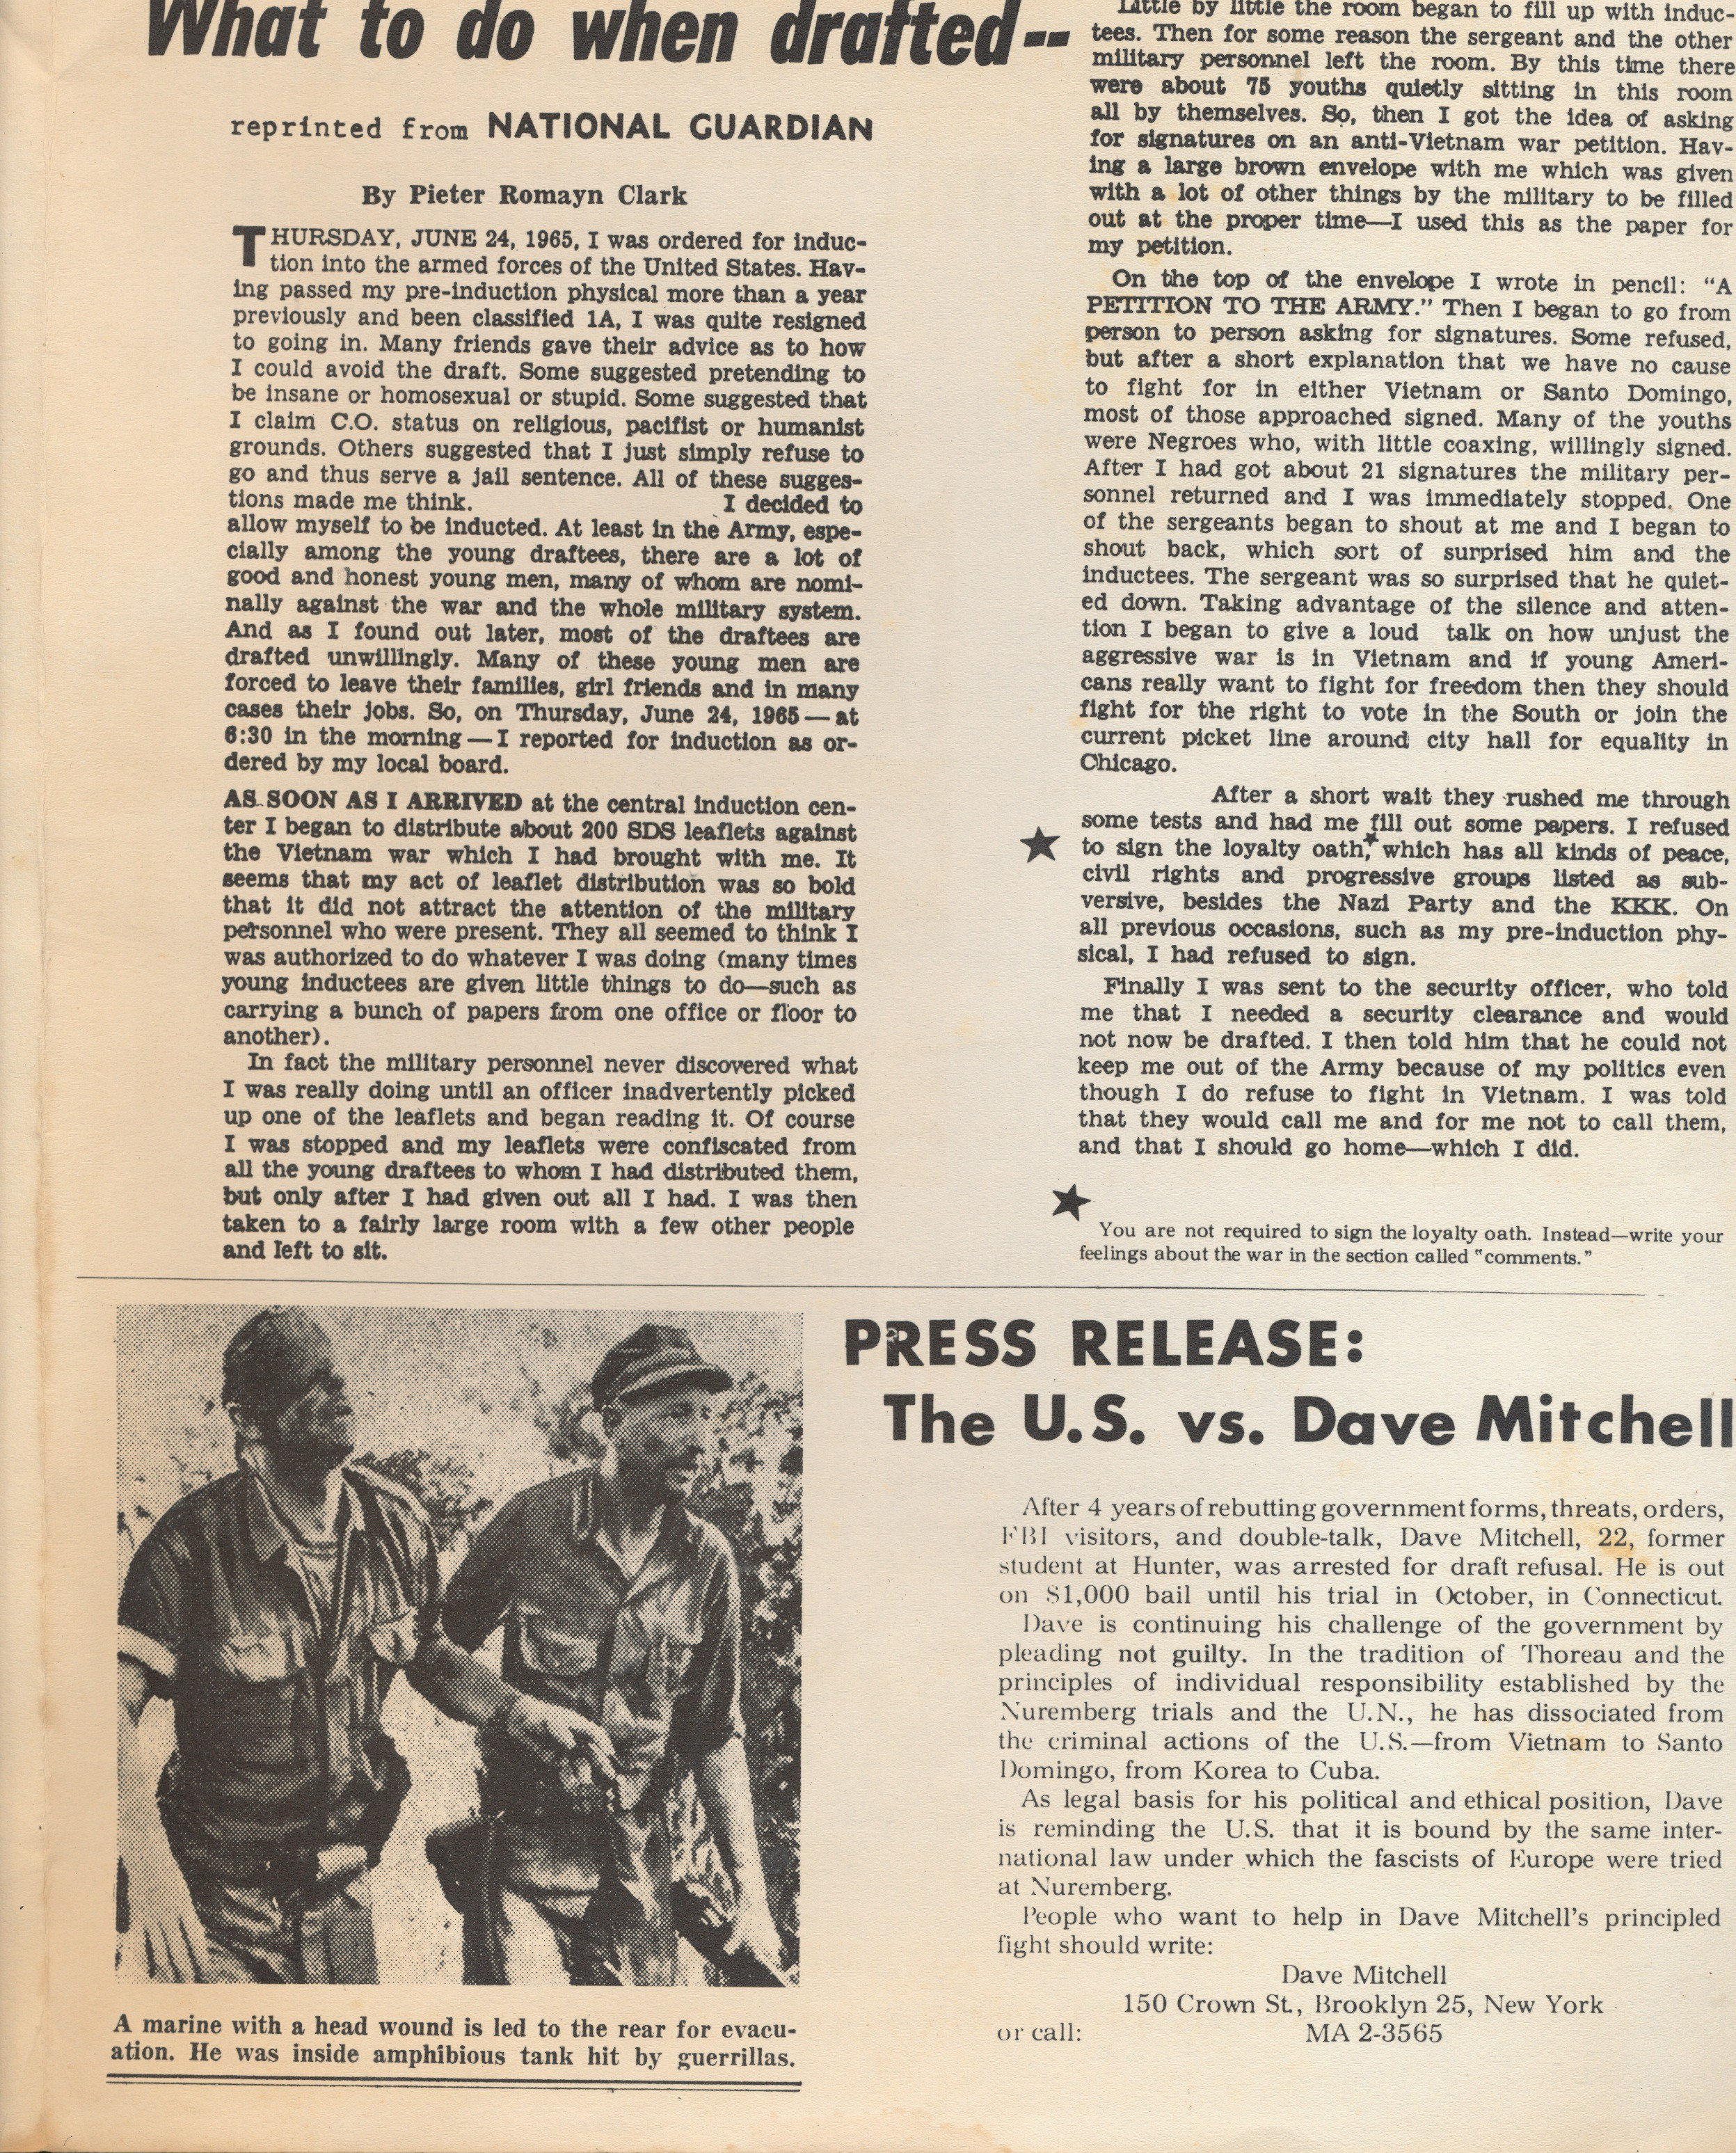 What the War is All About - SDS Leaflet 60s